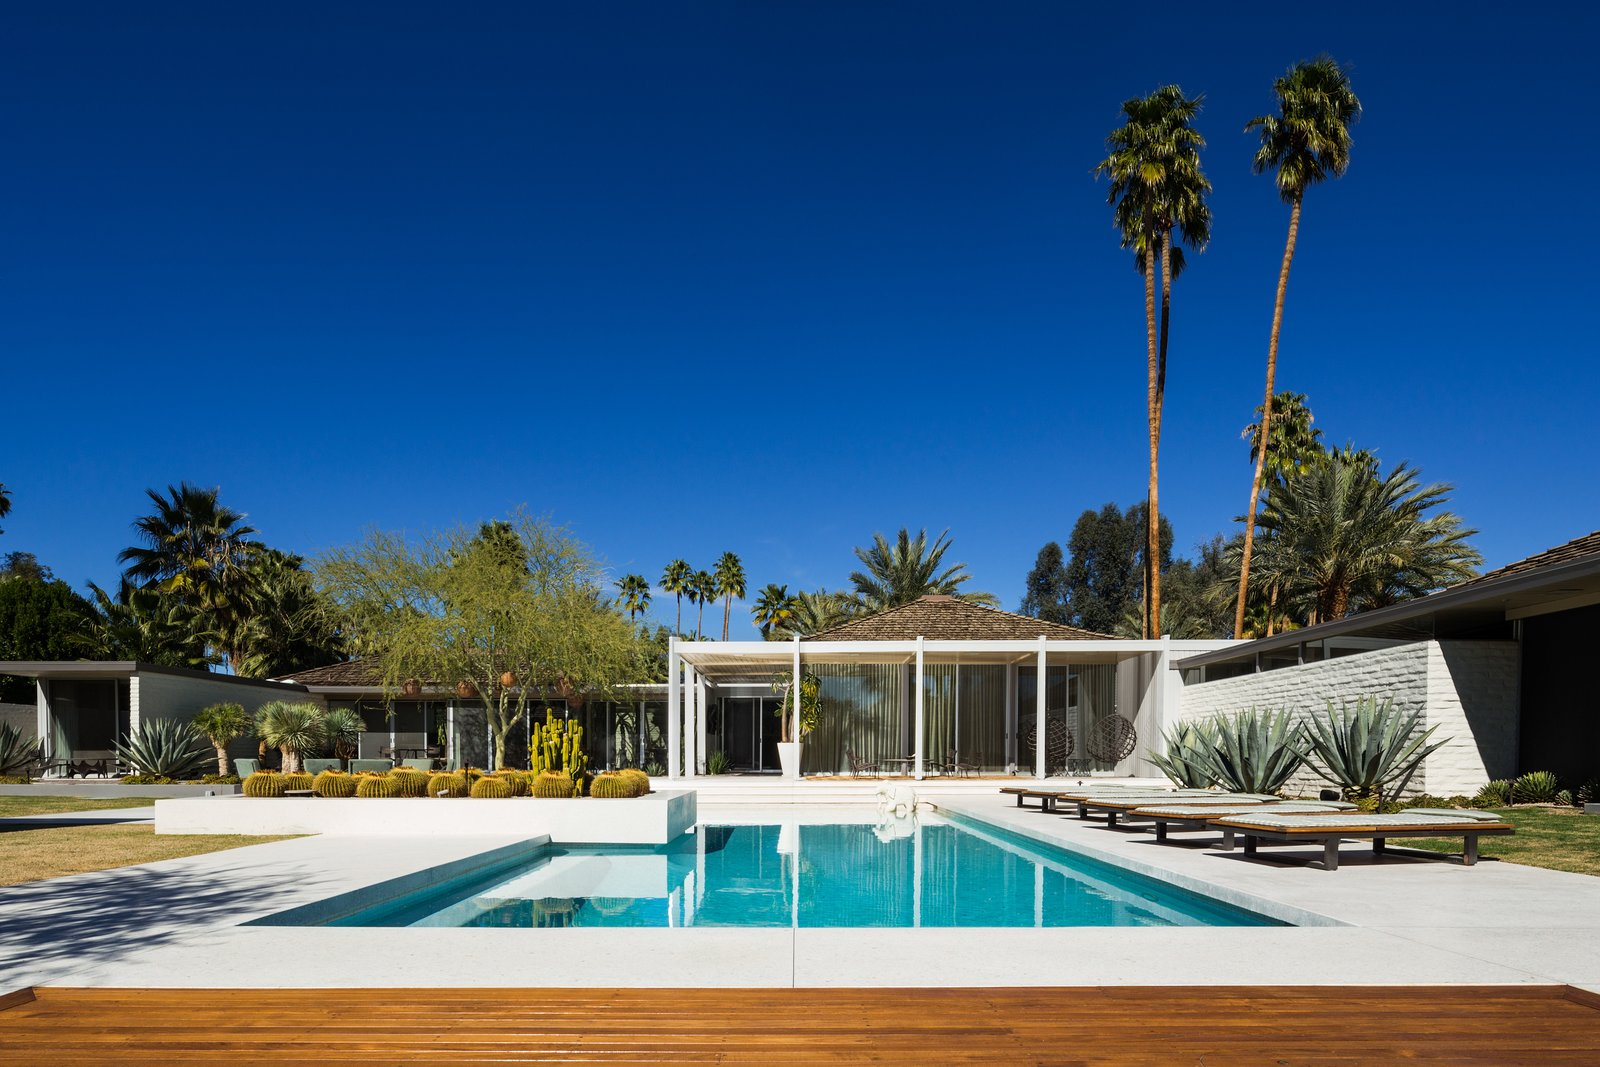 Outdoor, Trees, Back Yard, Gardens, Swimming Pools, Tubs, Shower, Hardscapes, Walkways, Concrete Patio, Porch, Deck, Large Patio, Porch, Deck, Raised Planters, and Wood Patio, Porch, Deck Abernathy House   Best Photos from 10 Things You Shouldn't Miss at Modernism Week in Palm Springs